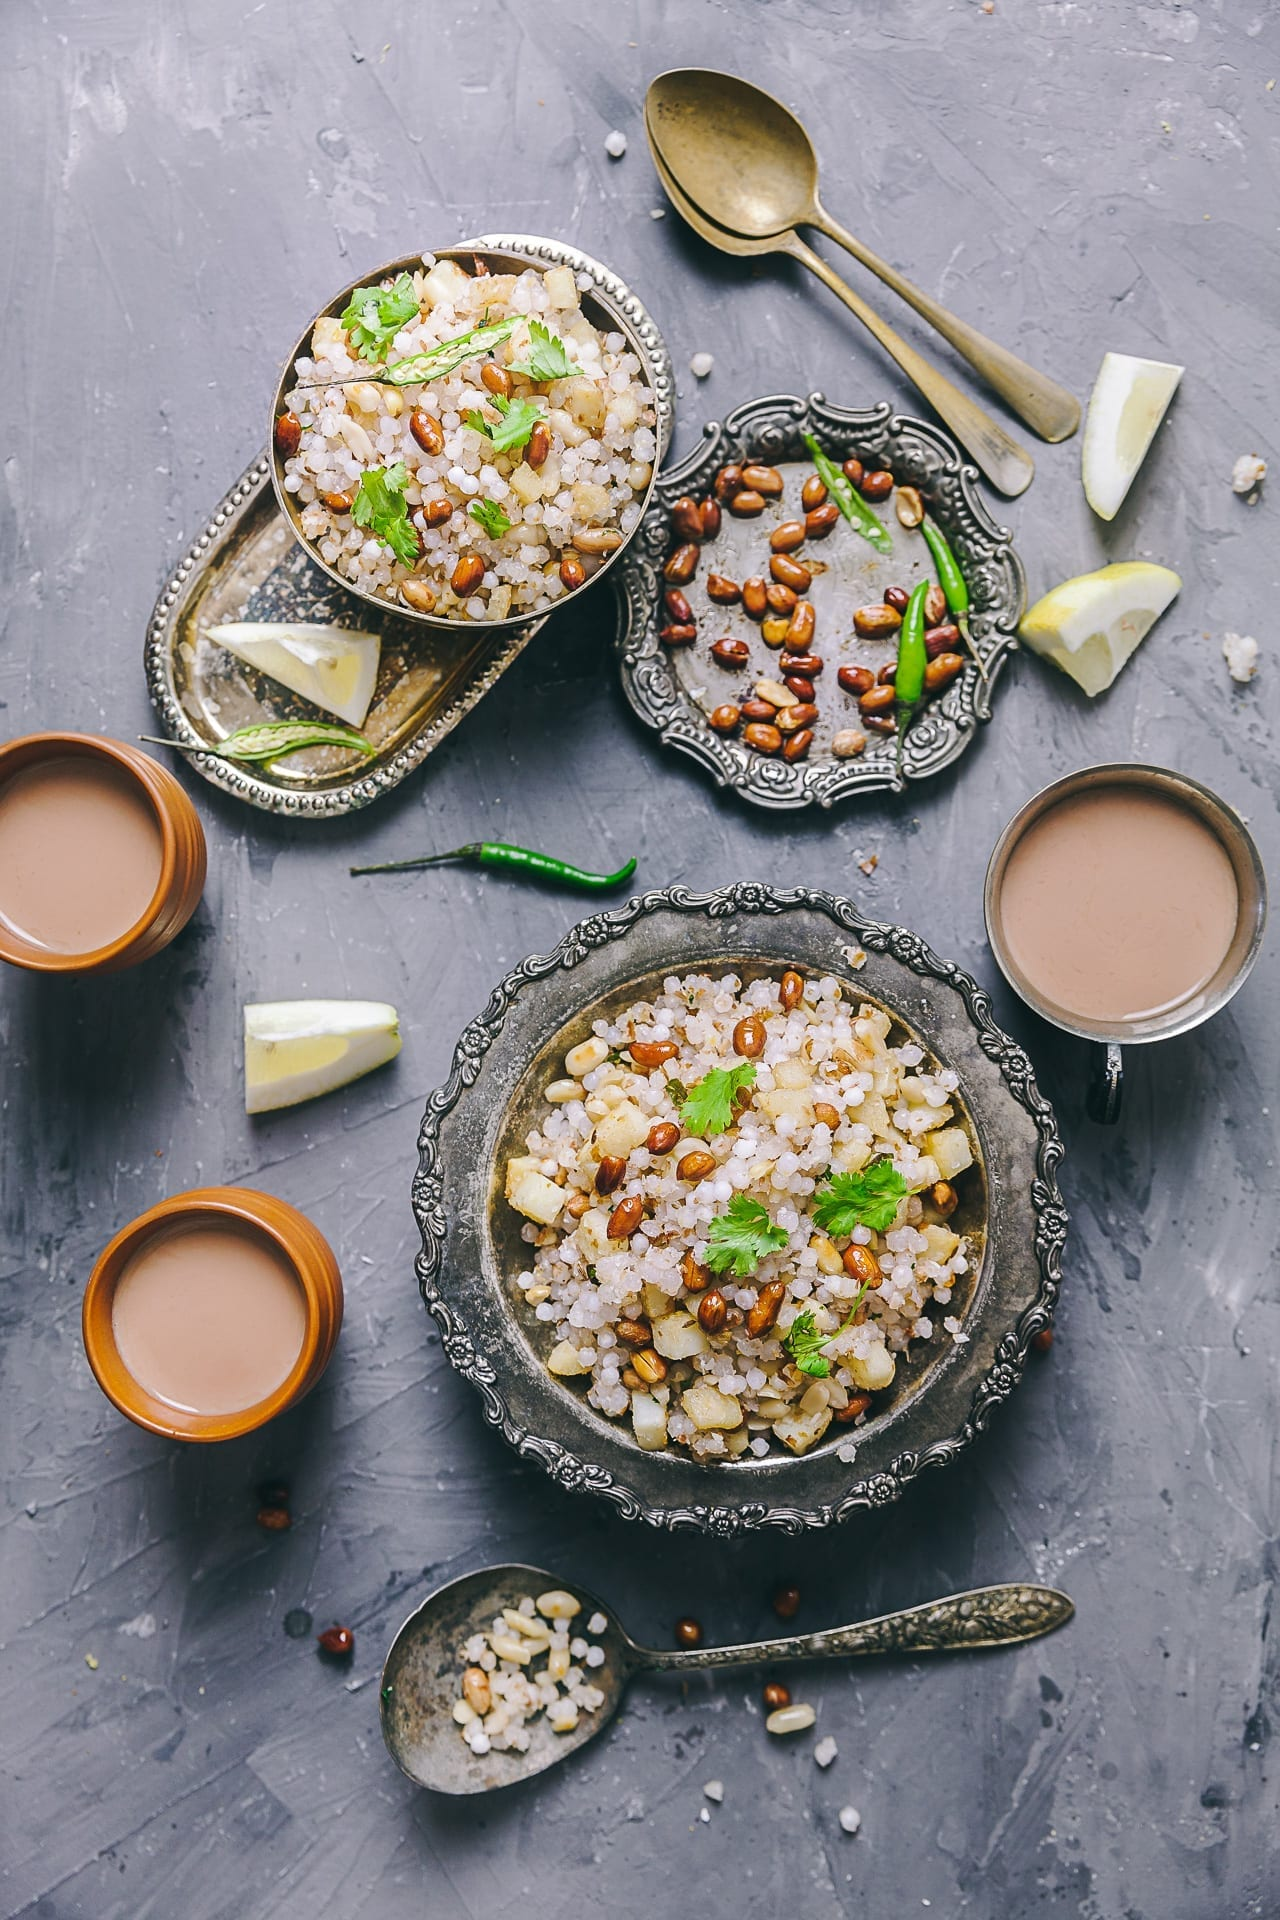 Navratri special fasting food | Playful Cooking #glutenfree #tapiocapearl #pilaf #foodphotography #navratri #indianfood